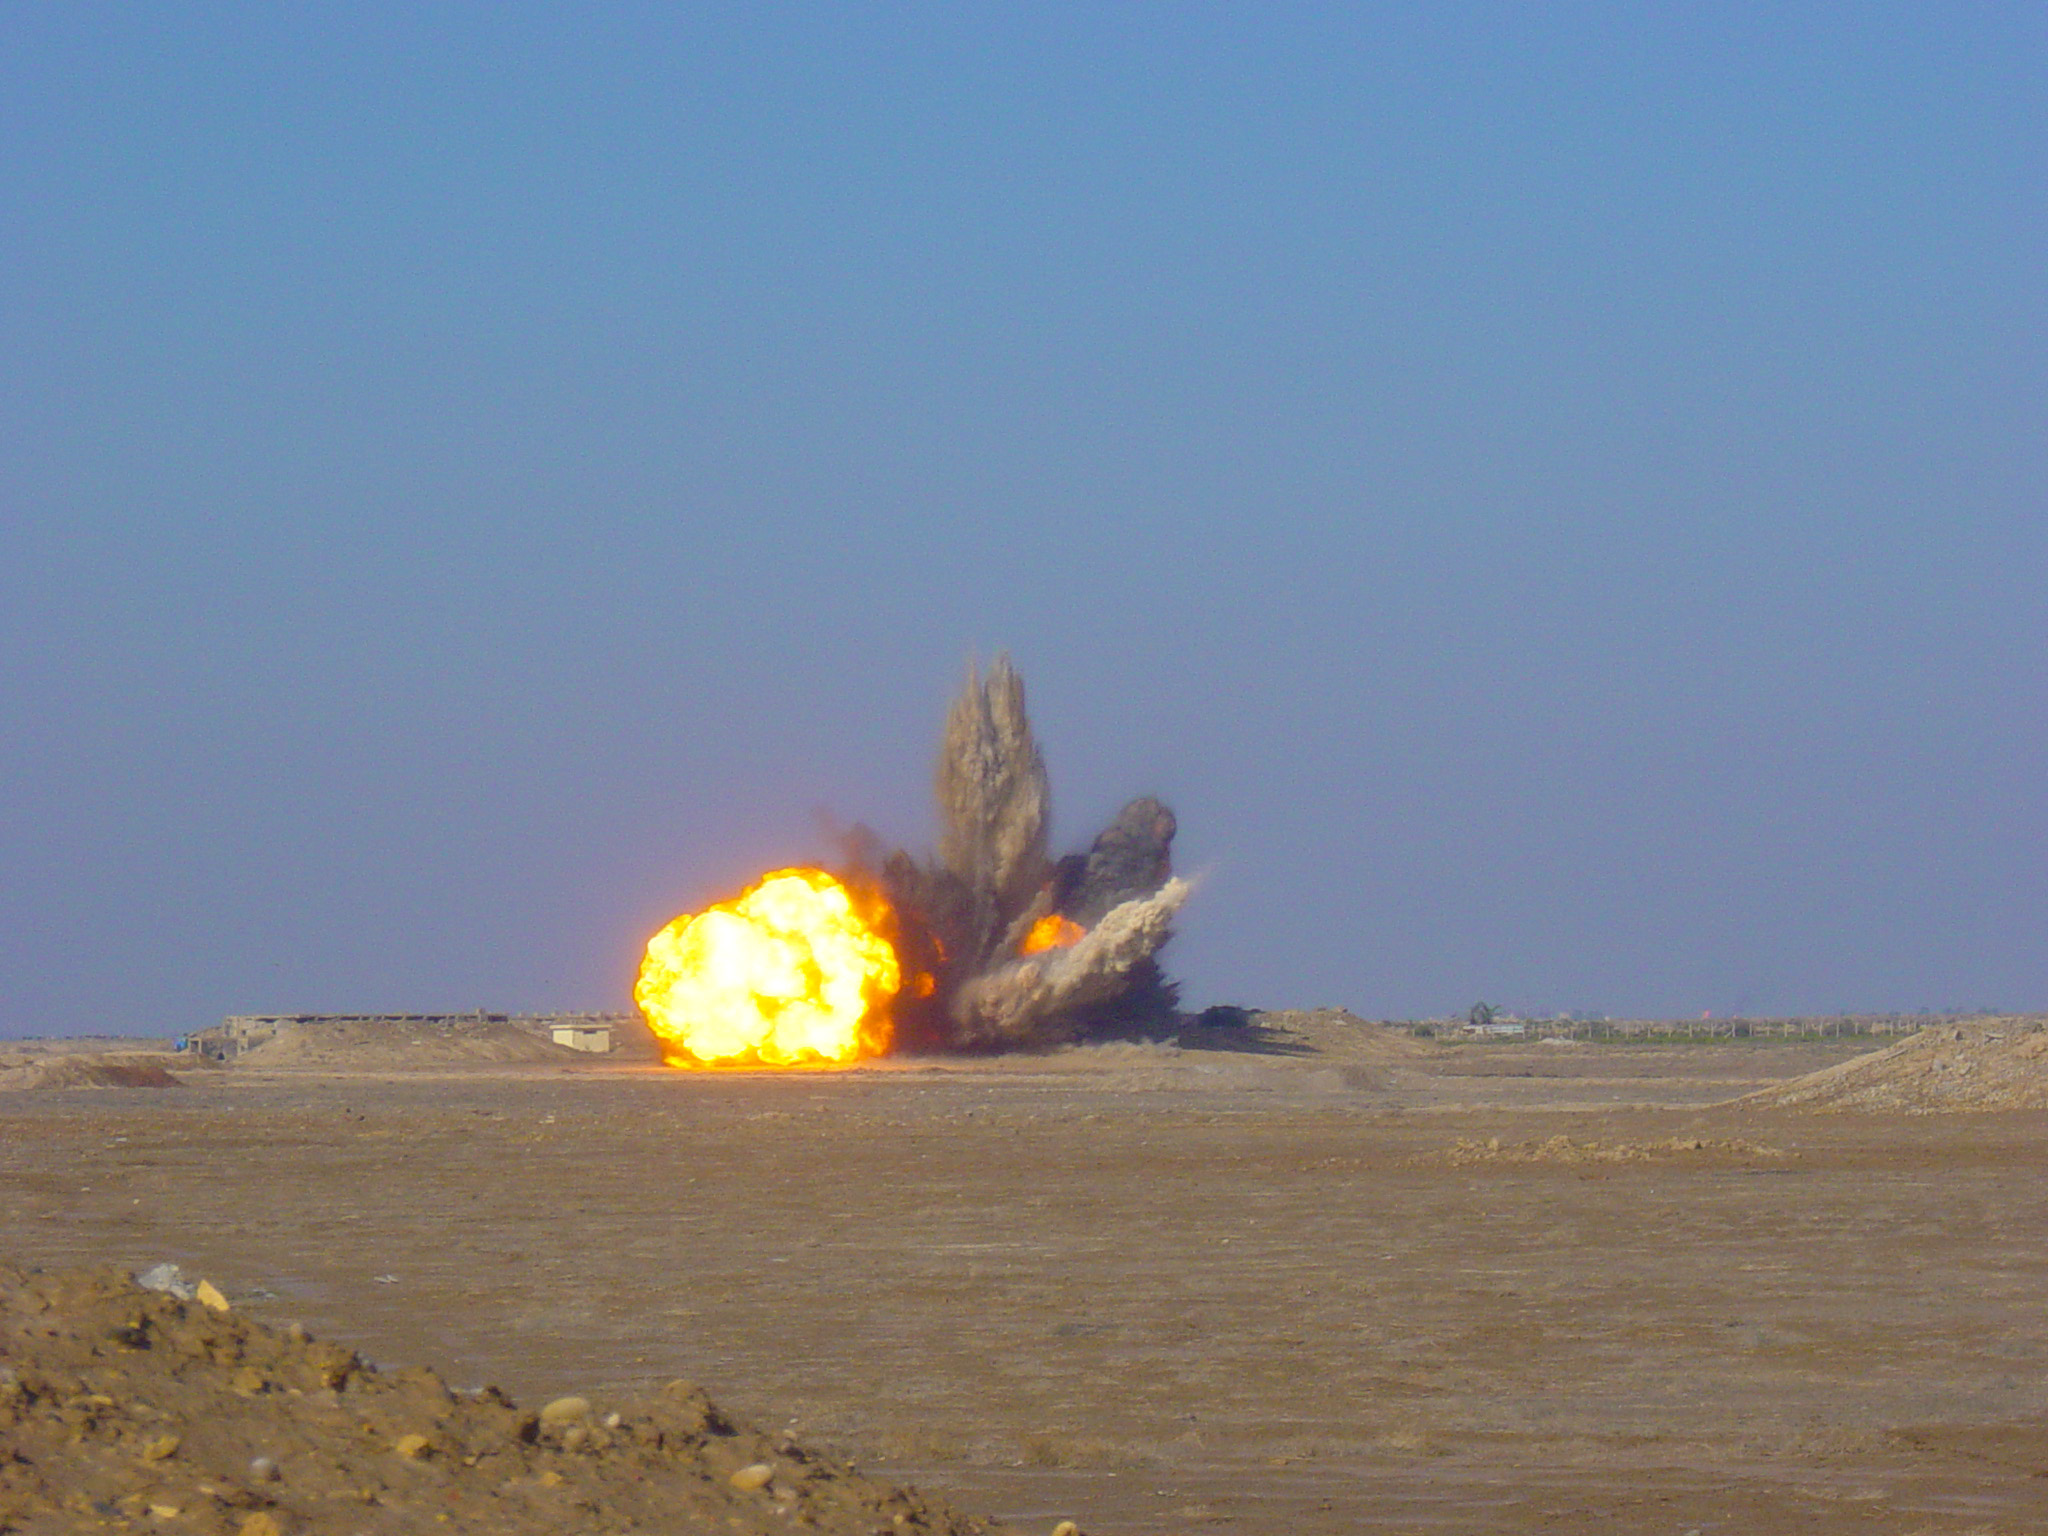 Controlled detonation of a prepared cache of munitions in the desert